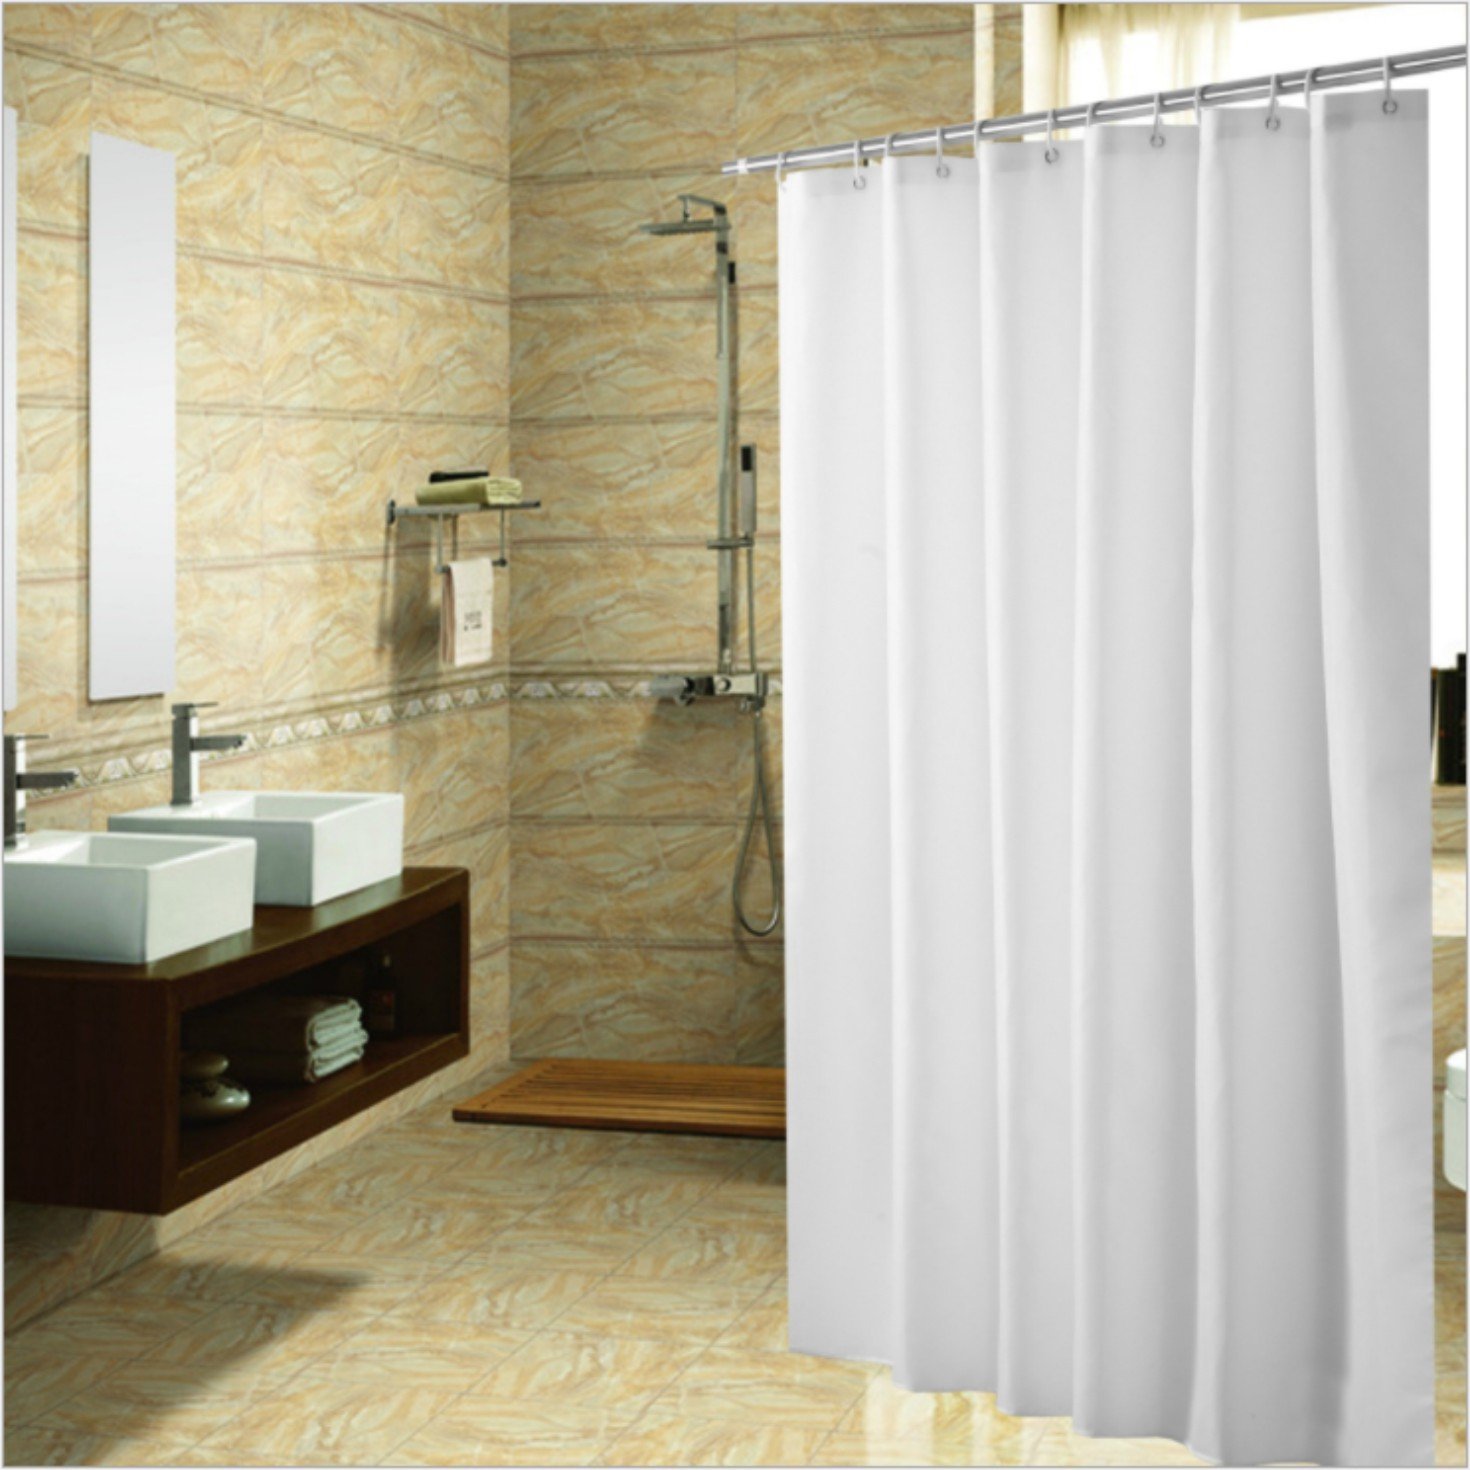 Meccion Shower Curtain, Resistant Fabric Shower Curtain Lock Hole Heavy Duty Bathroom Curtain Liner, Mildew Resistant Washable Polyester Fabric Shower Curtain (40 x 72)